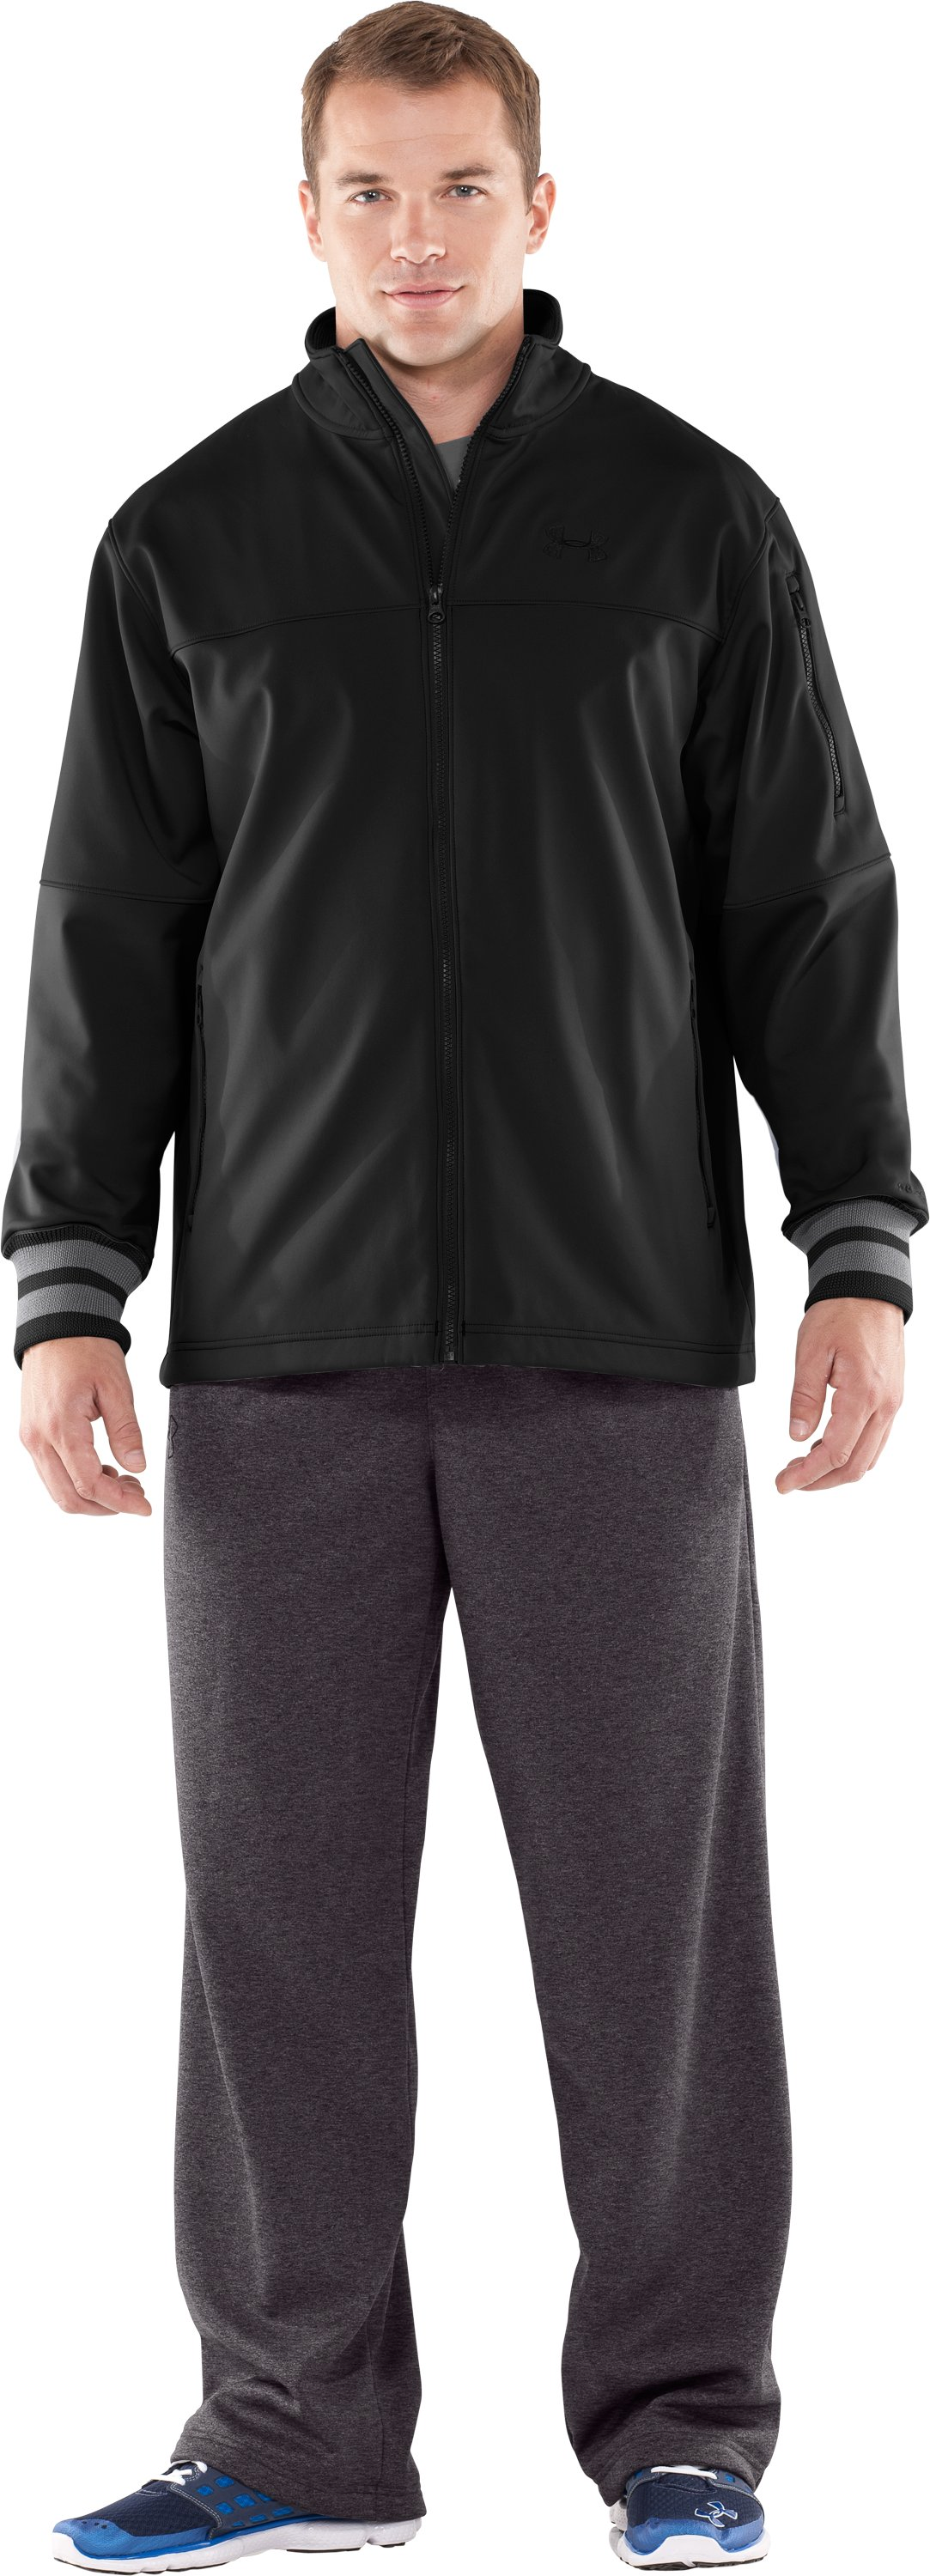 Men's UA Contender Storm Softshell Jacket, Black